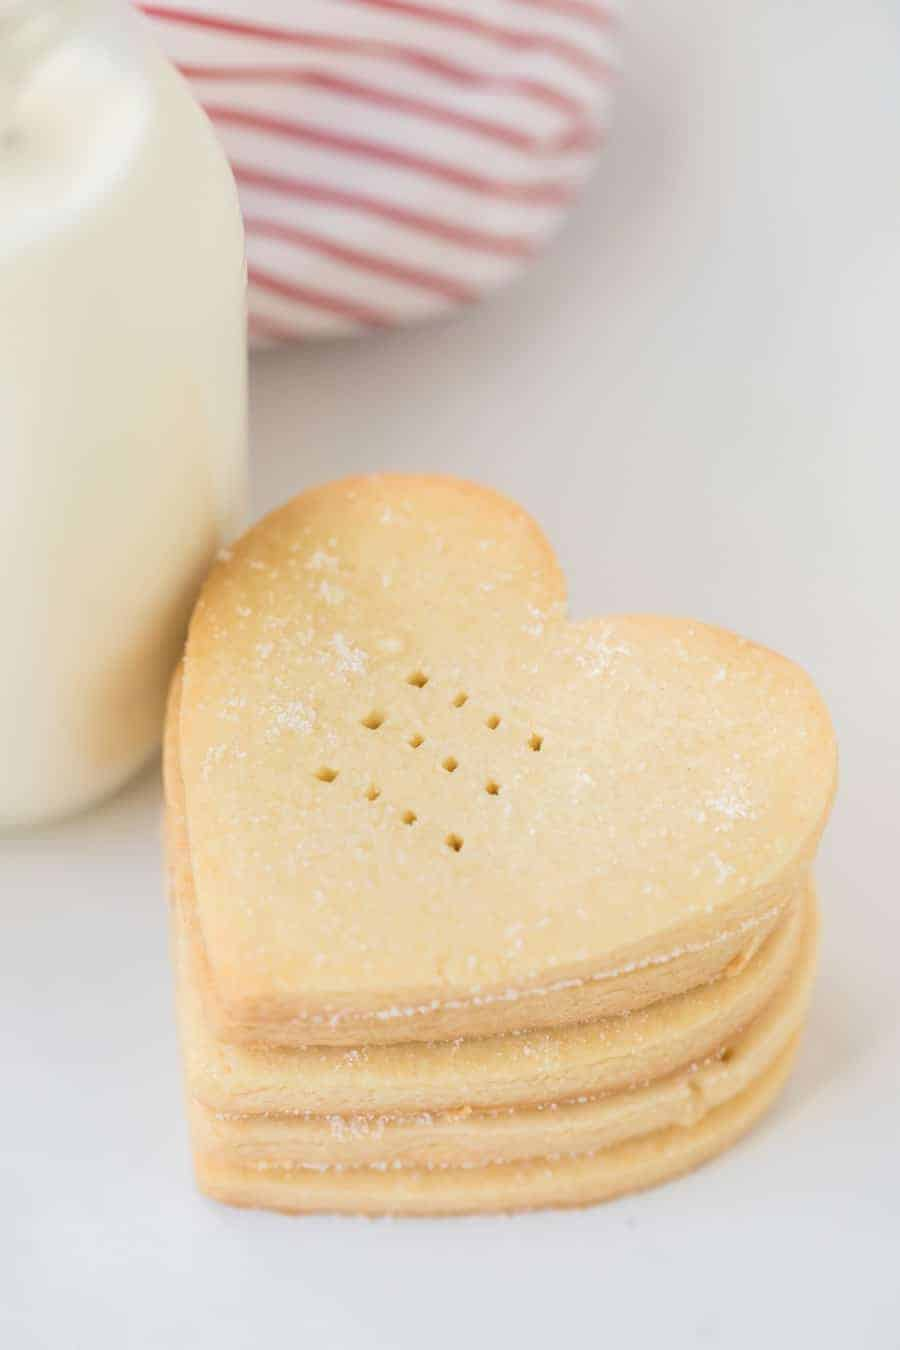 A close up of heart shaped shortbread cookies by a glass jug of milk.